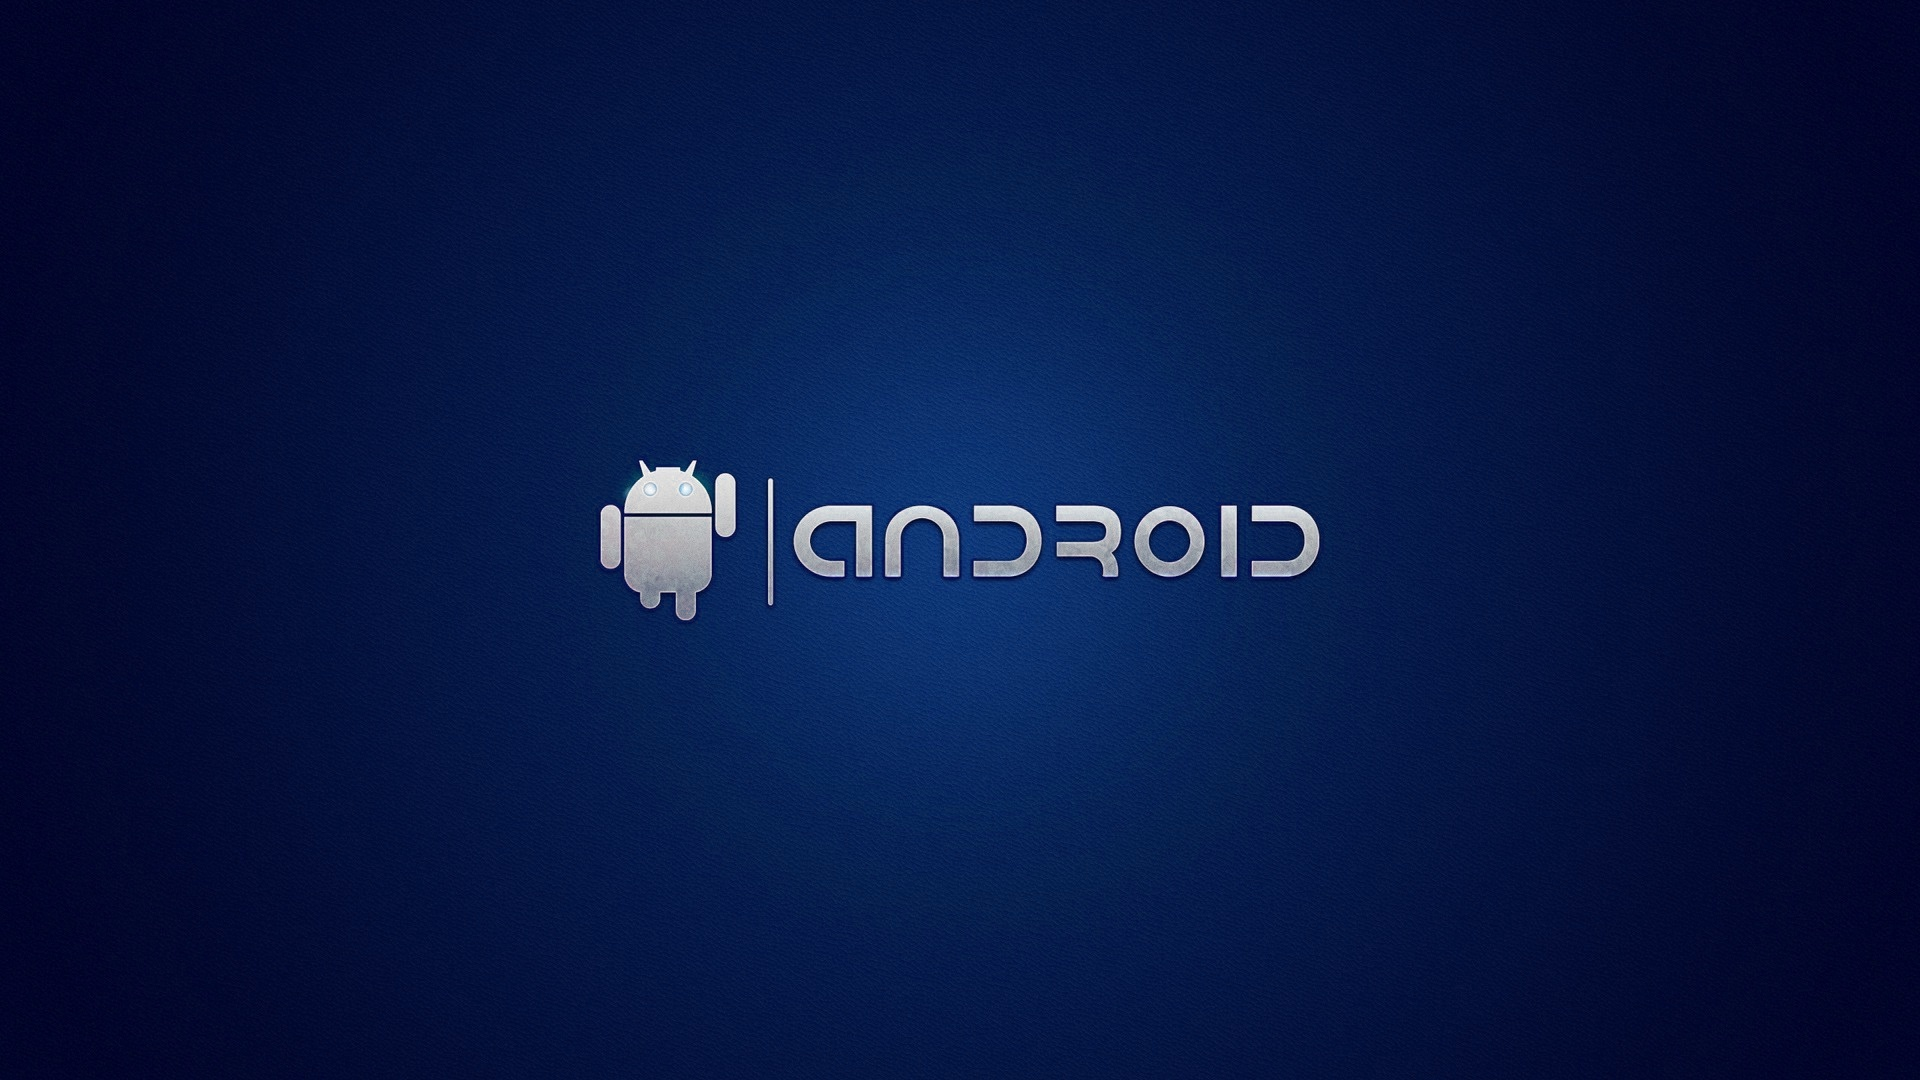 android blue high definition wallpapers hd wallpapers